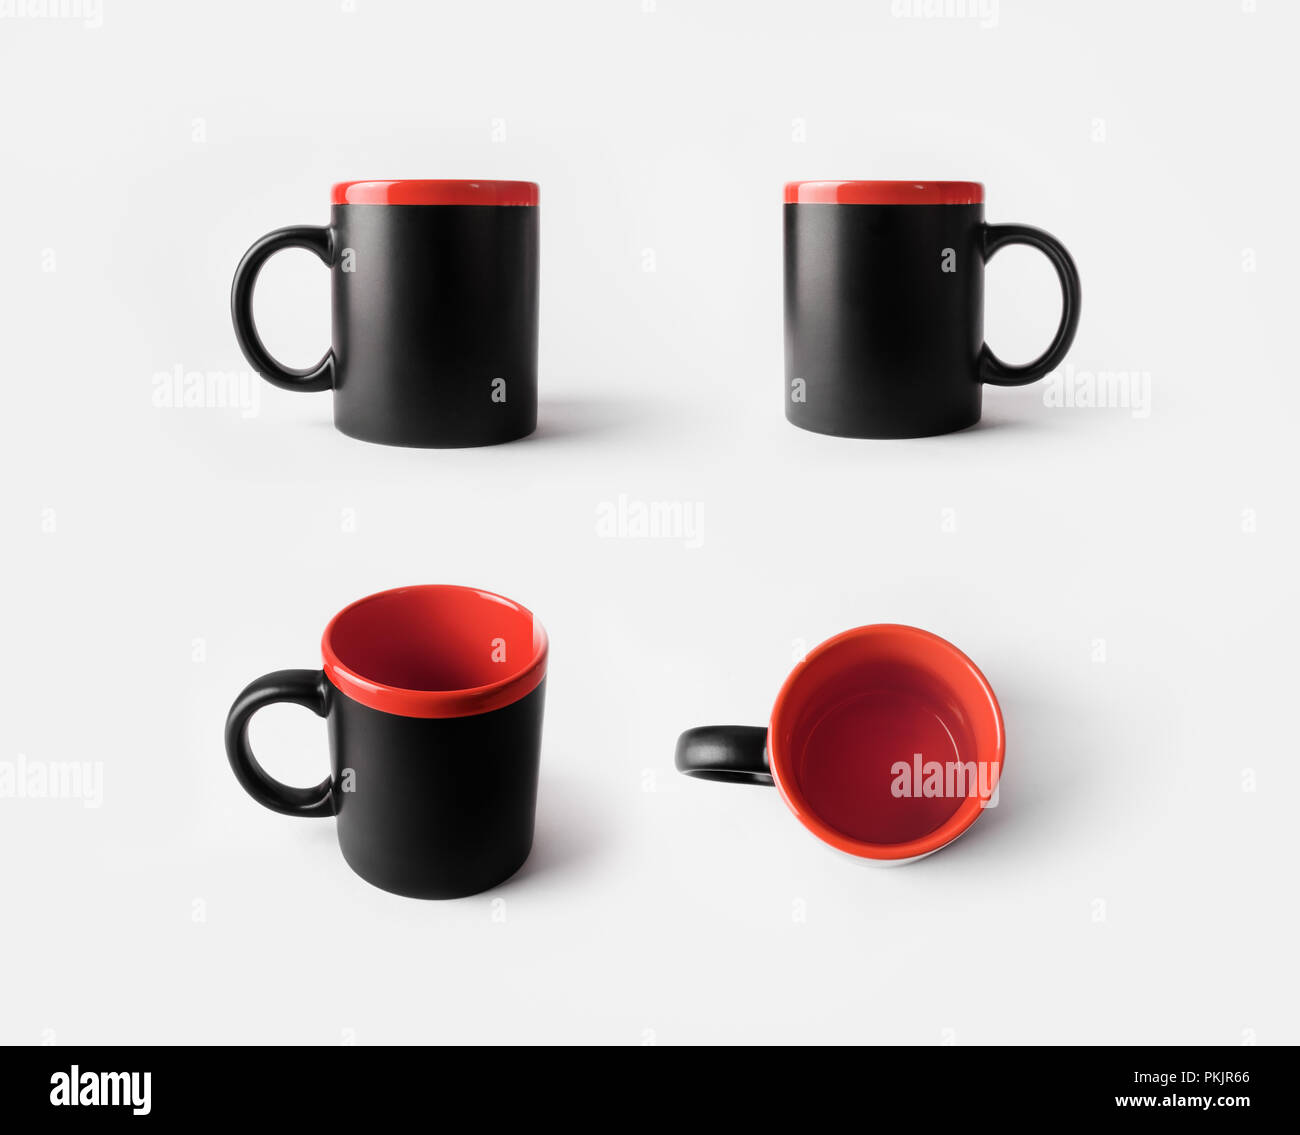 blank black and red ceramic cups mugs for coffee or tea responsive